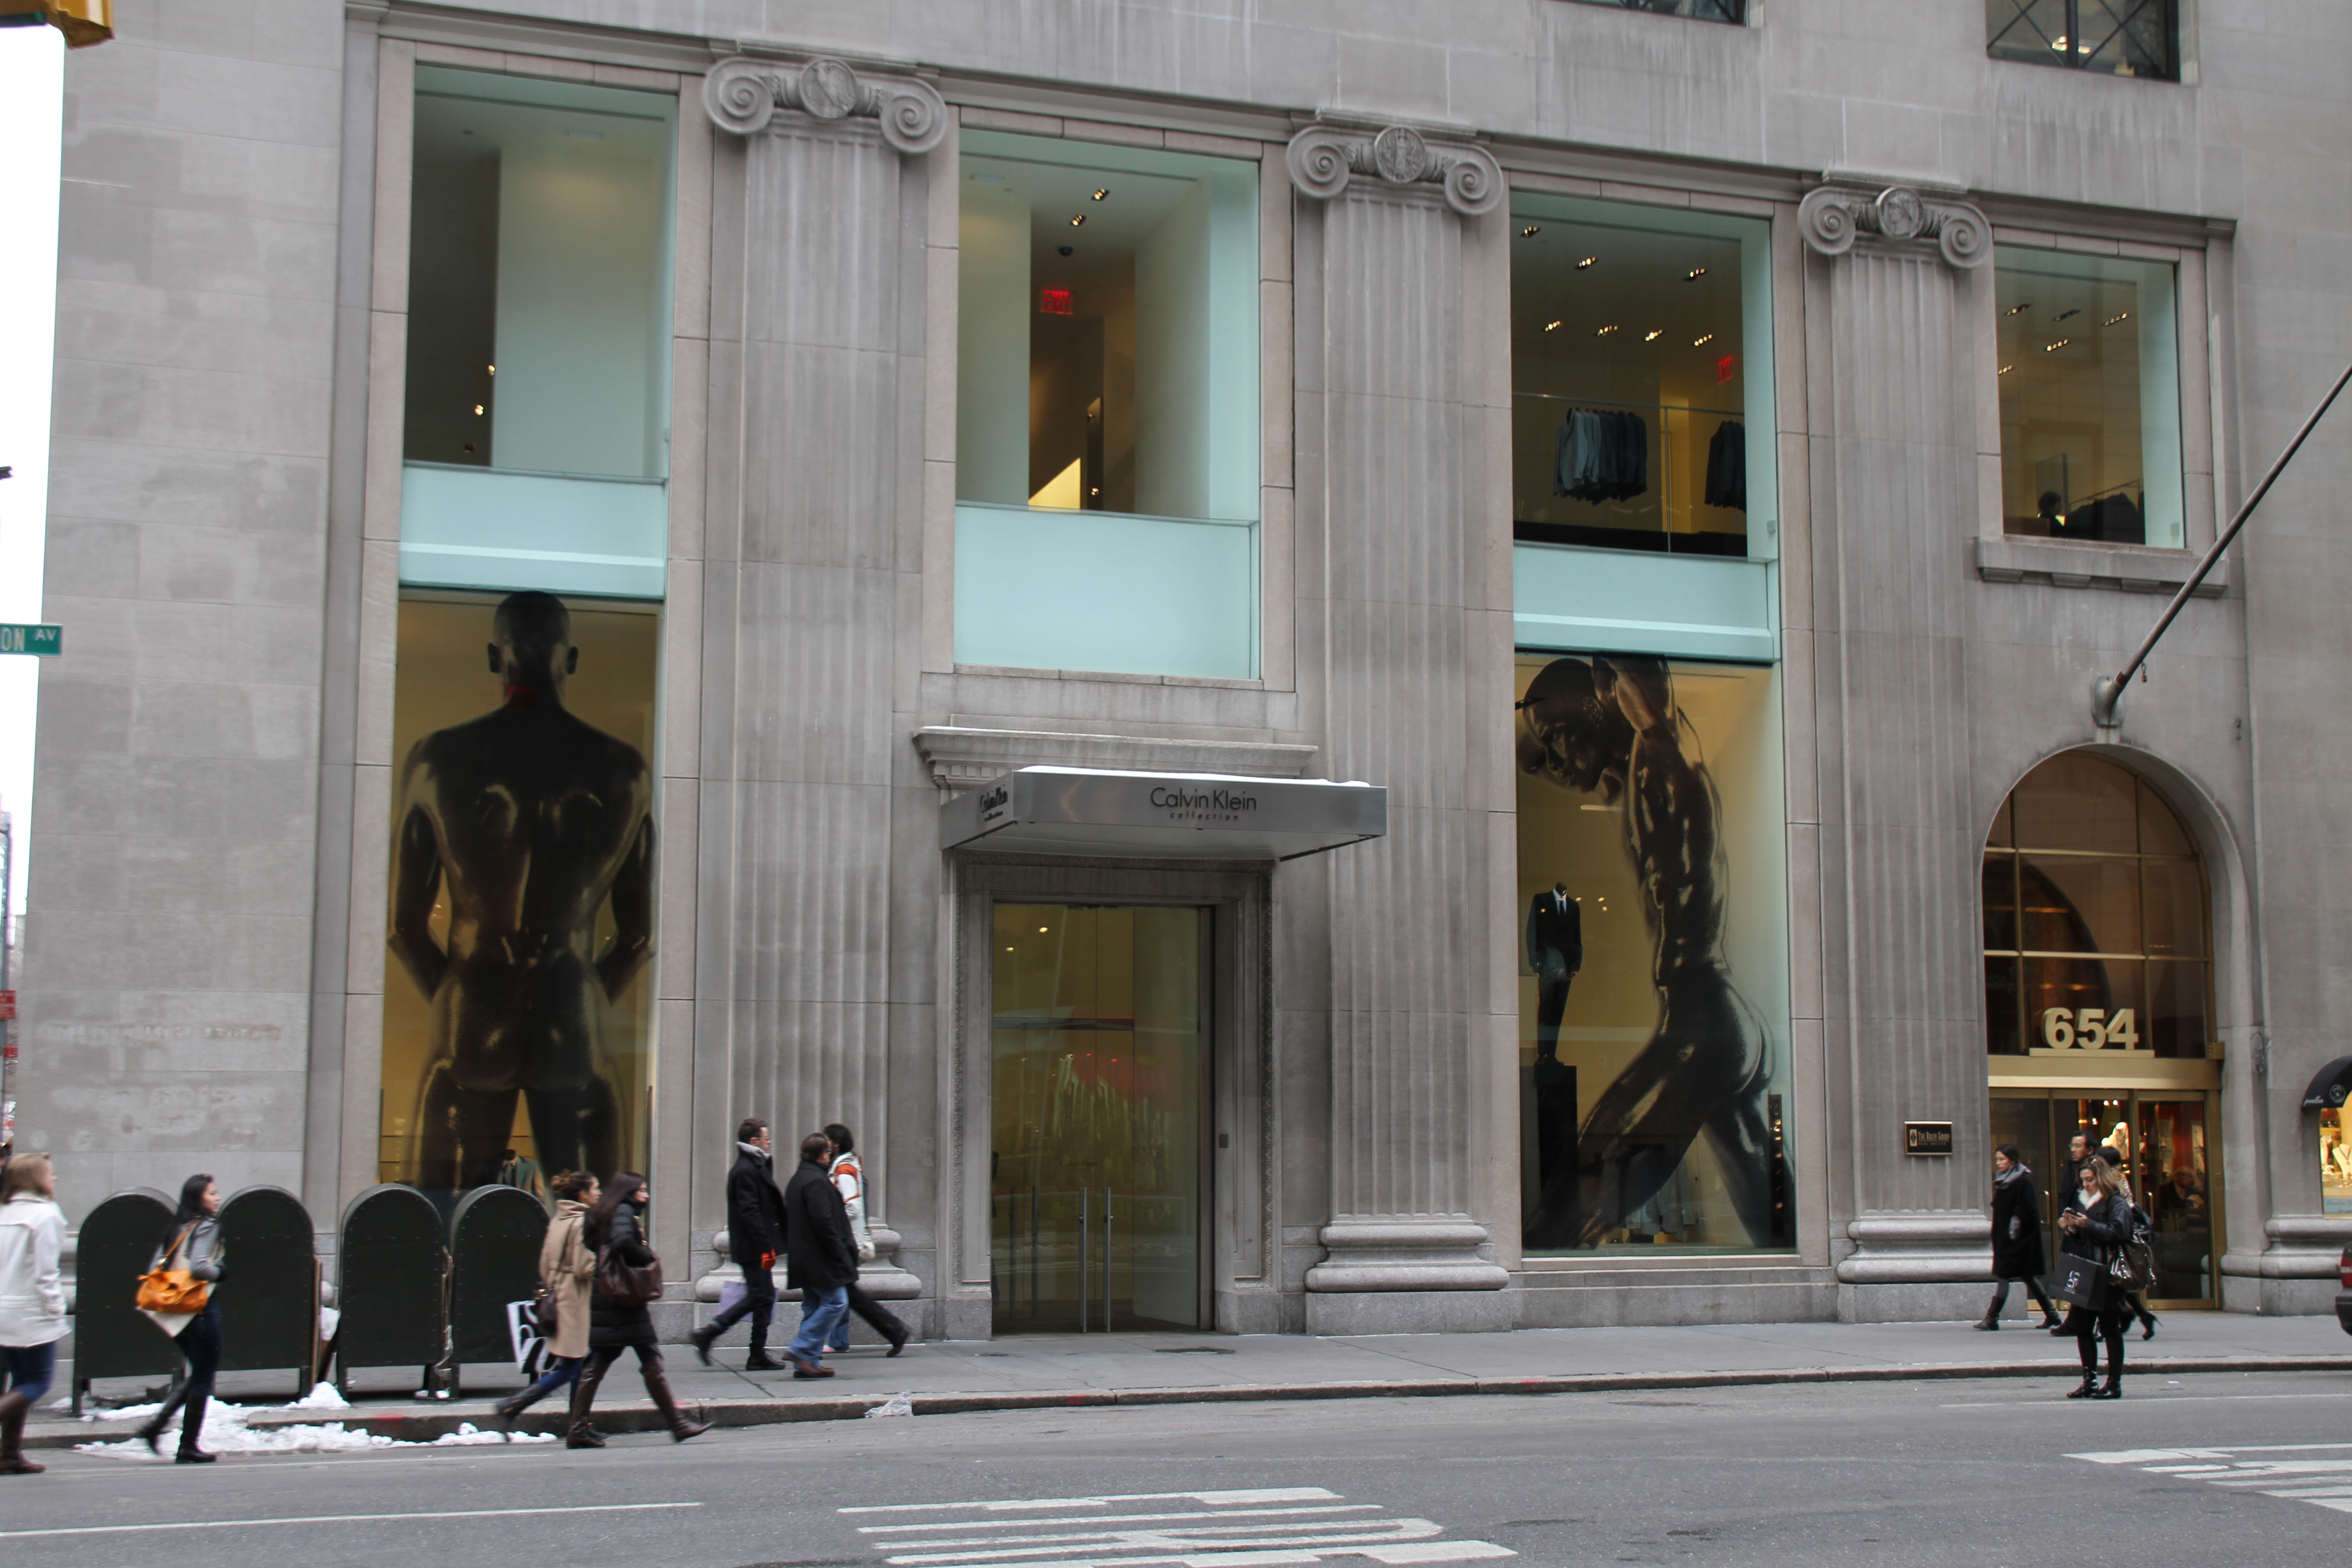 file calvin klein collection flagship store 654 madison avenue new york city wikimedia. Black Bedroom Furniture Sets. Home Design Ideas